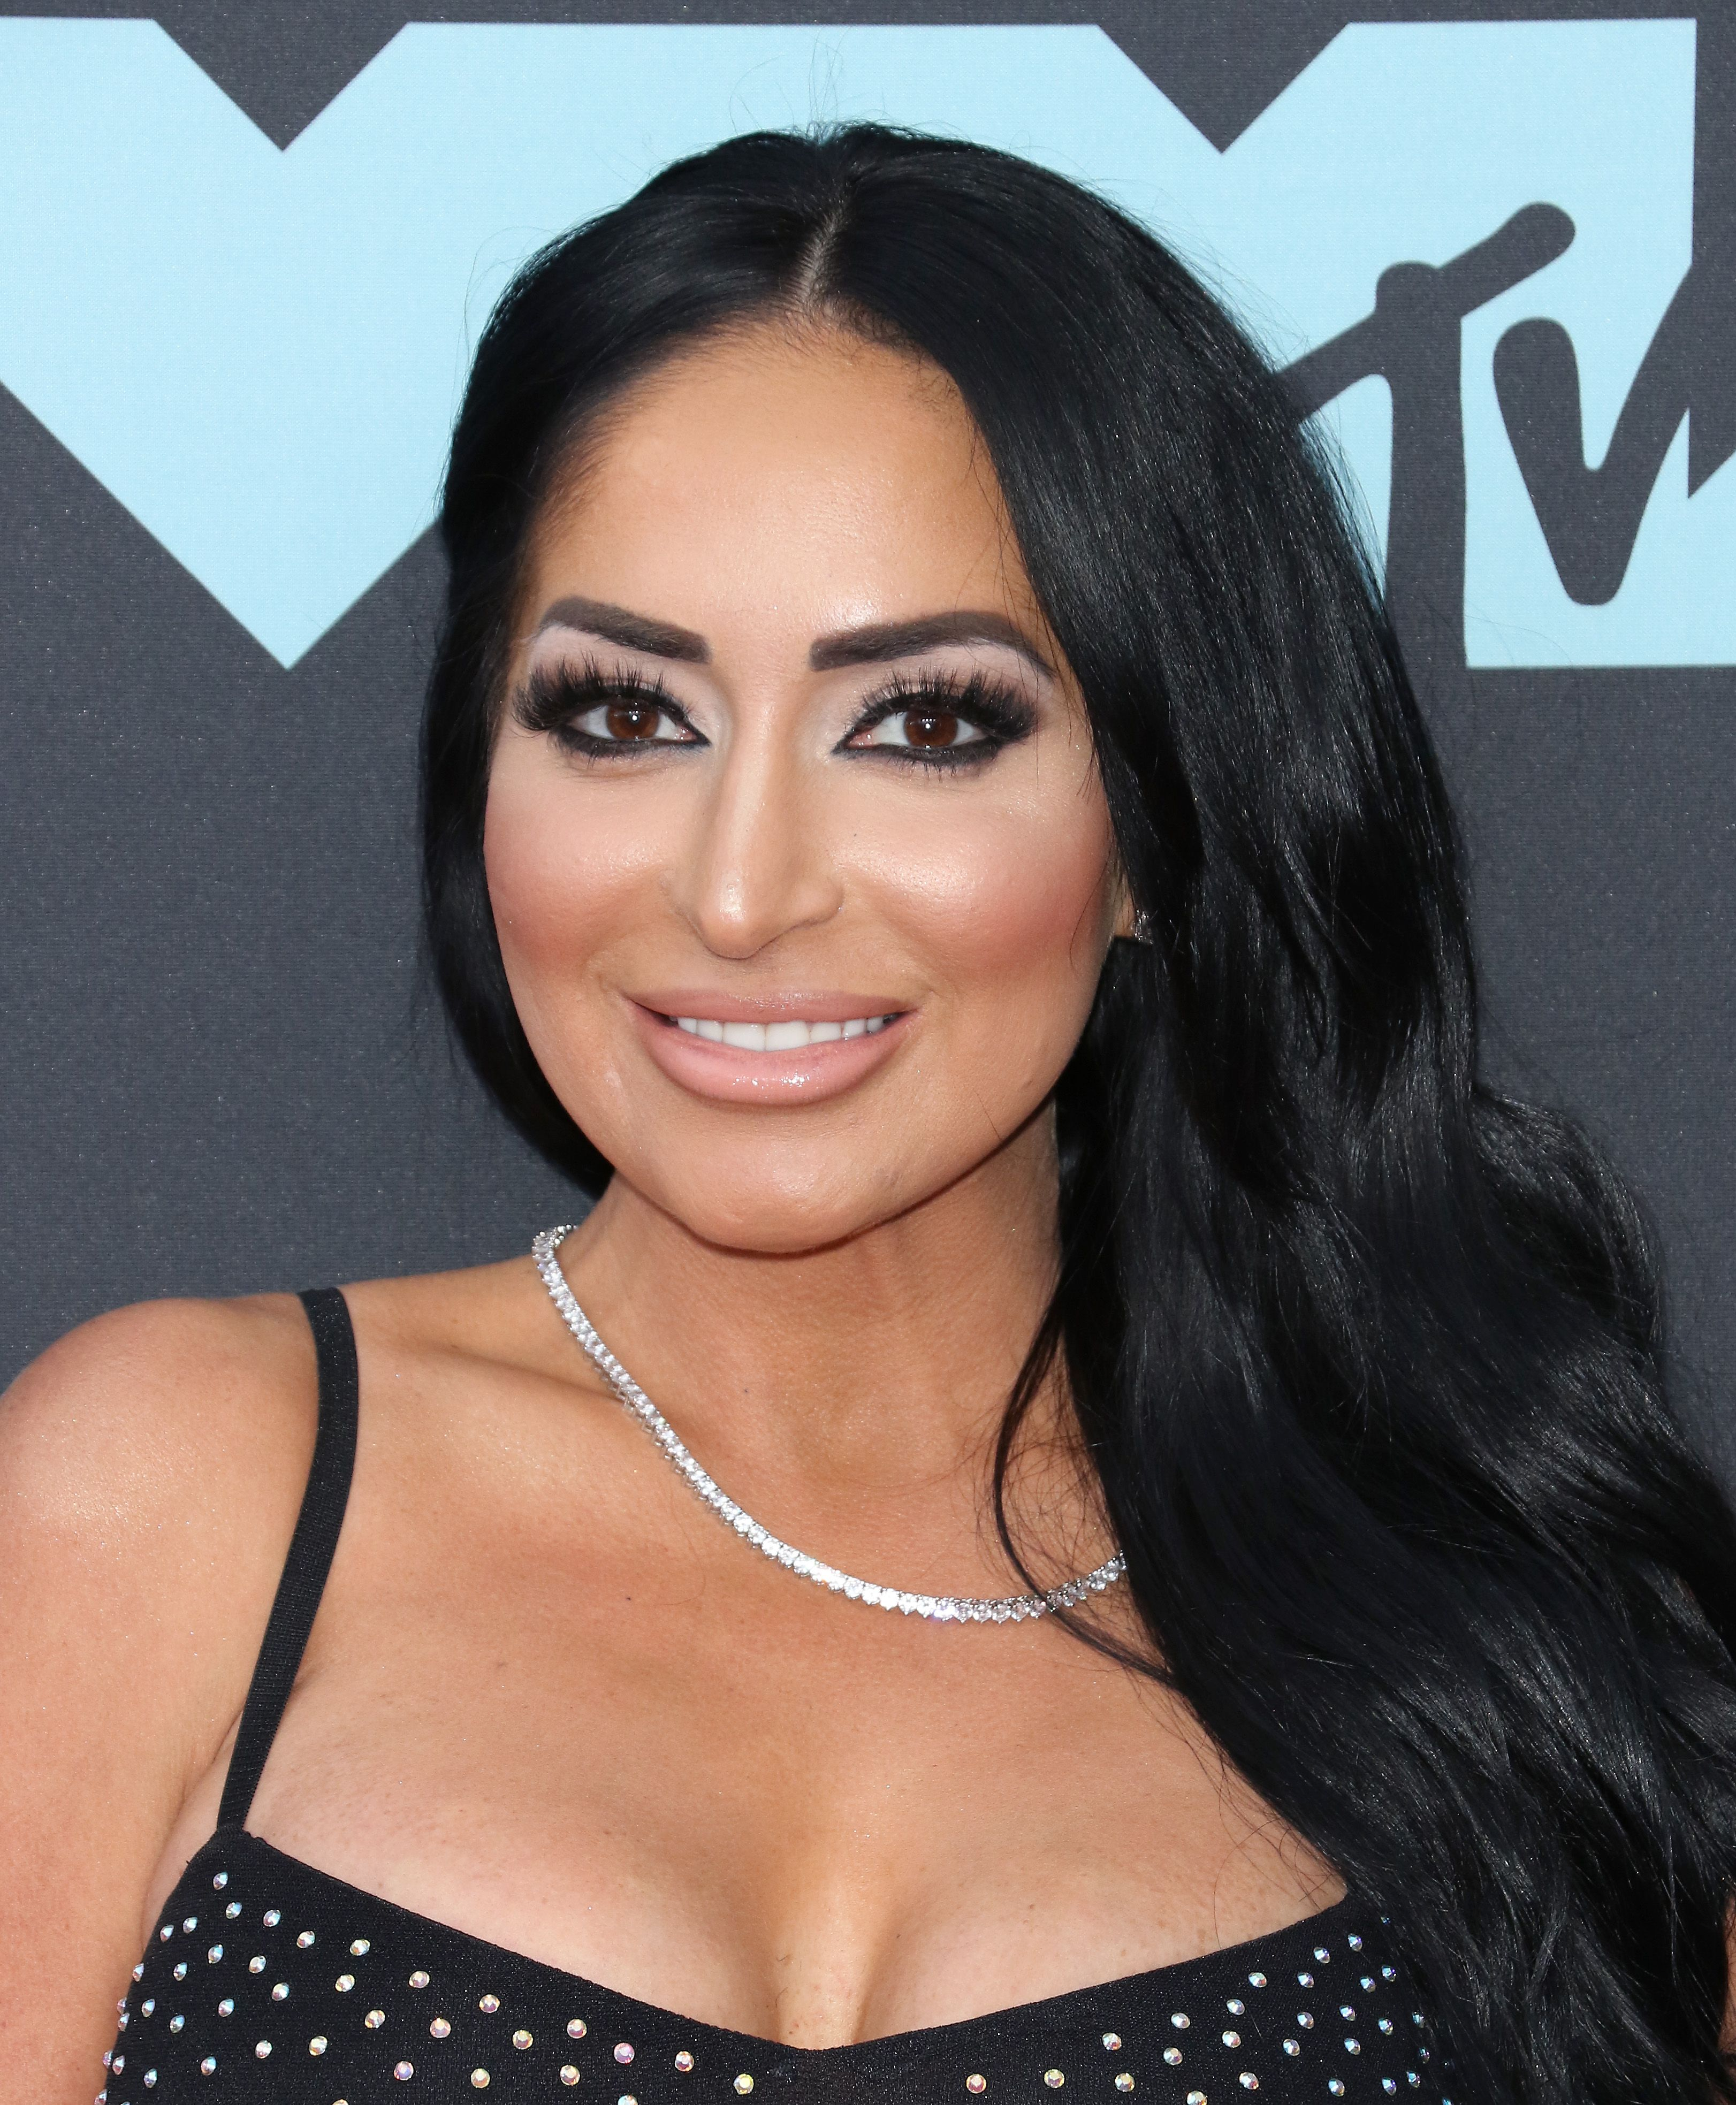 Angelina Jersey Shore Sexy angelina pivarnick wants a fresh start